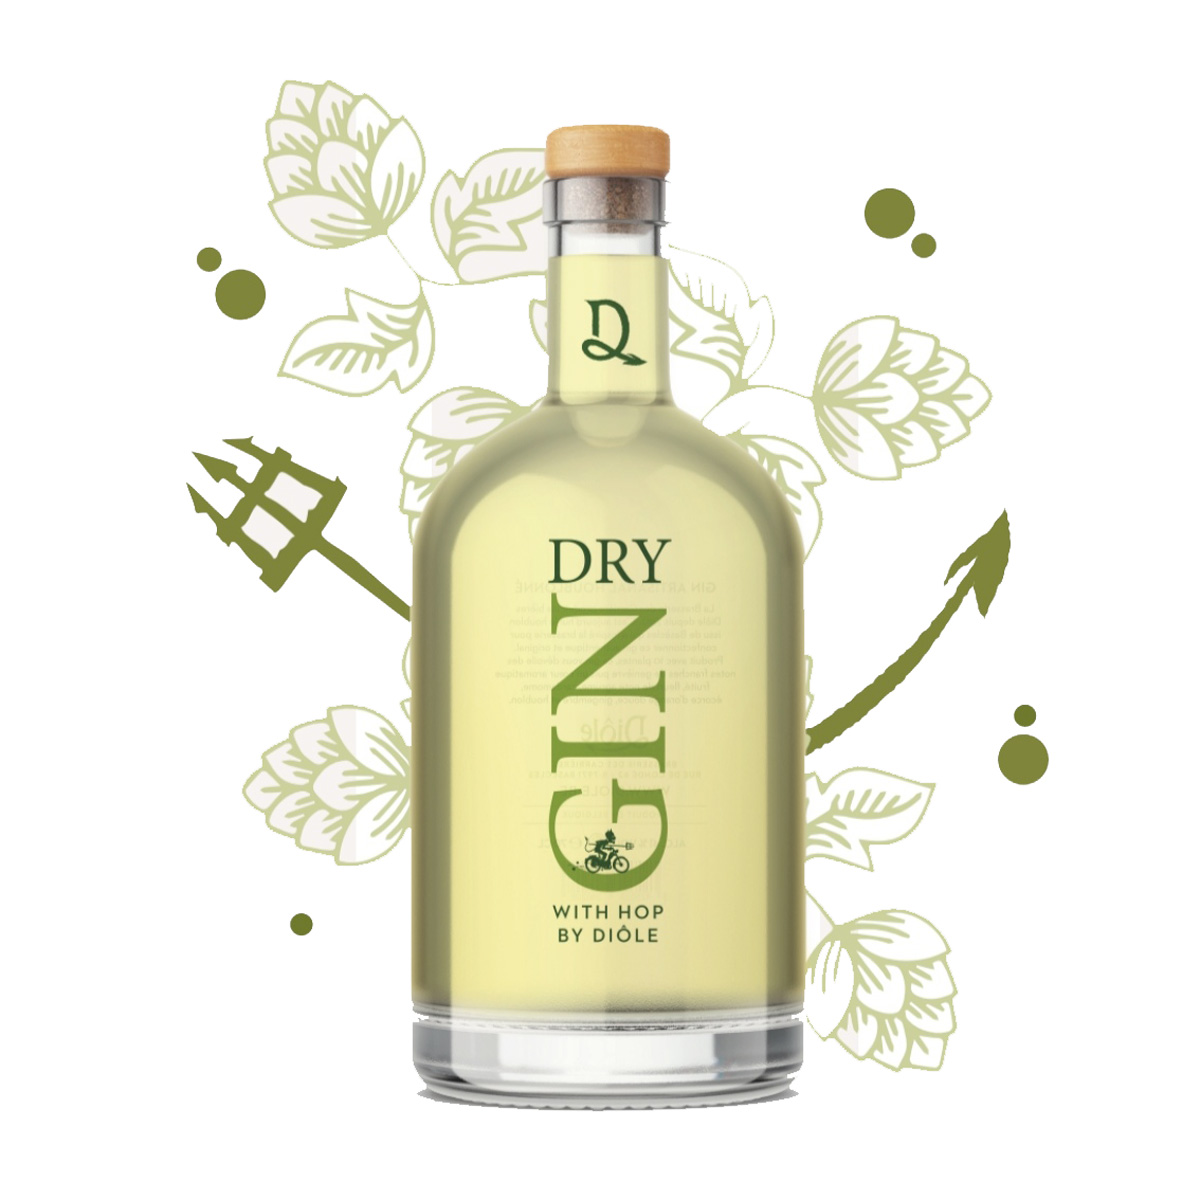 Gin - Dry Gin with hop by Diôle - 40° - 70cl